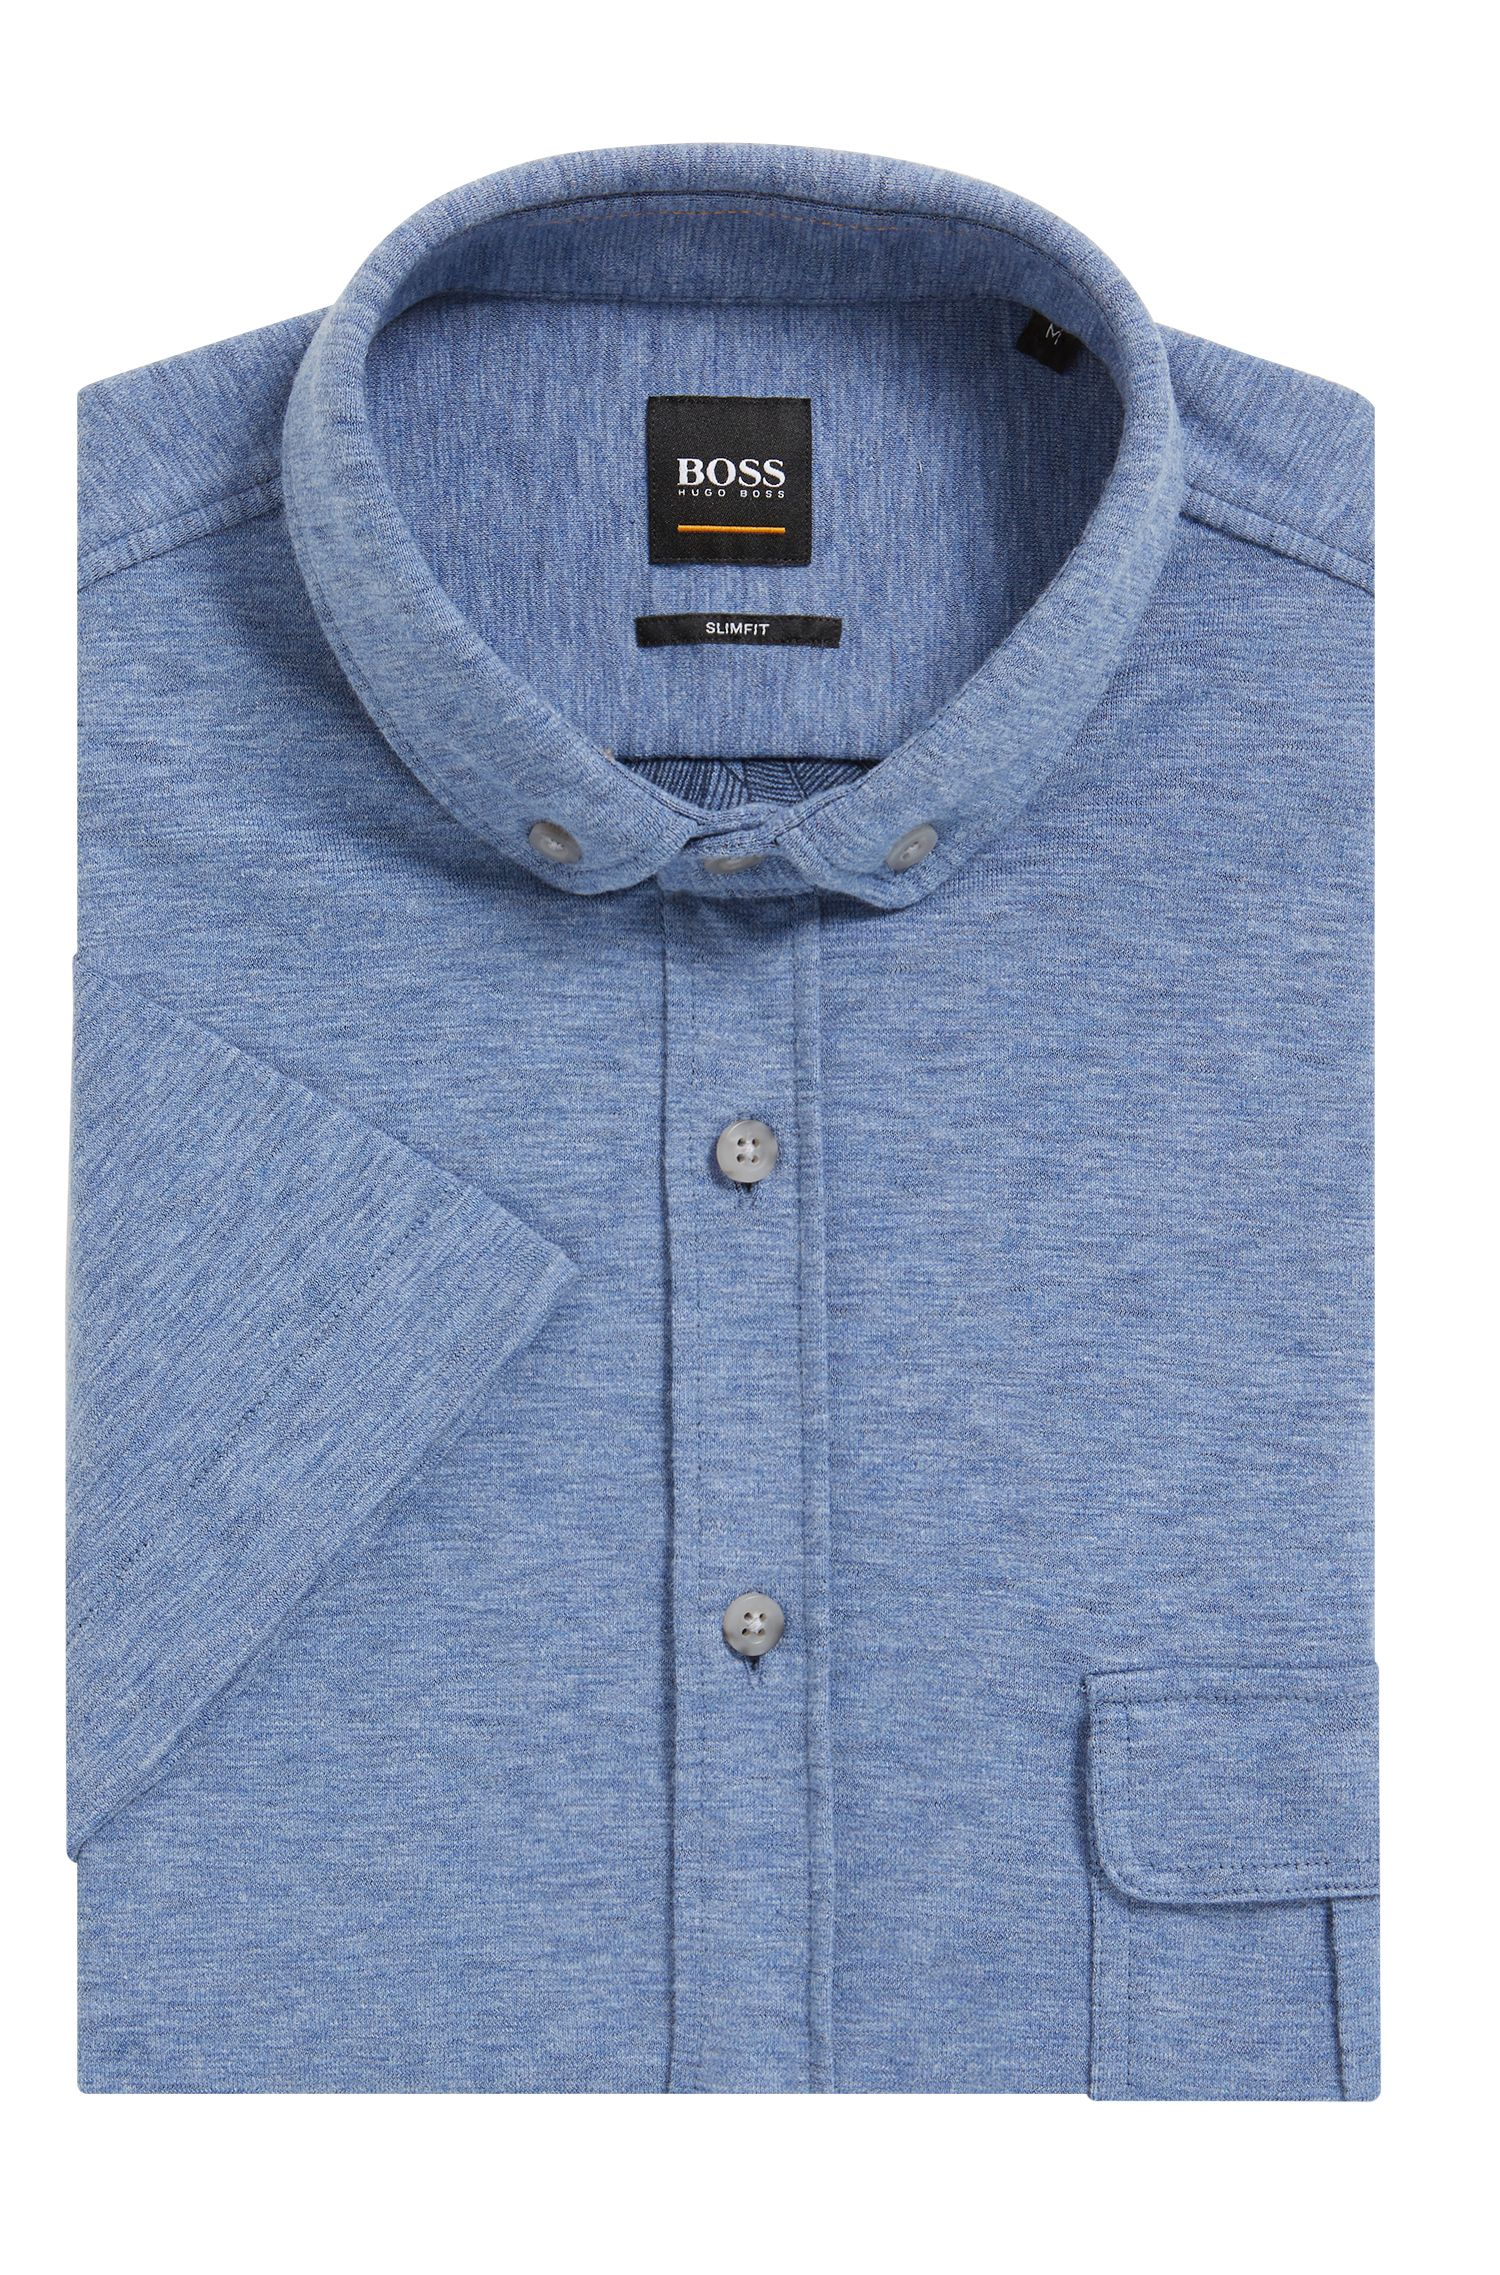 Cotton Jersey Sport Shirt, Slim Fit | Elibre, Dark Blue